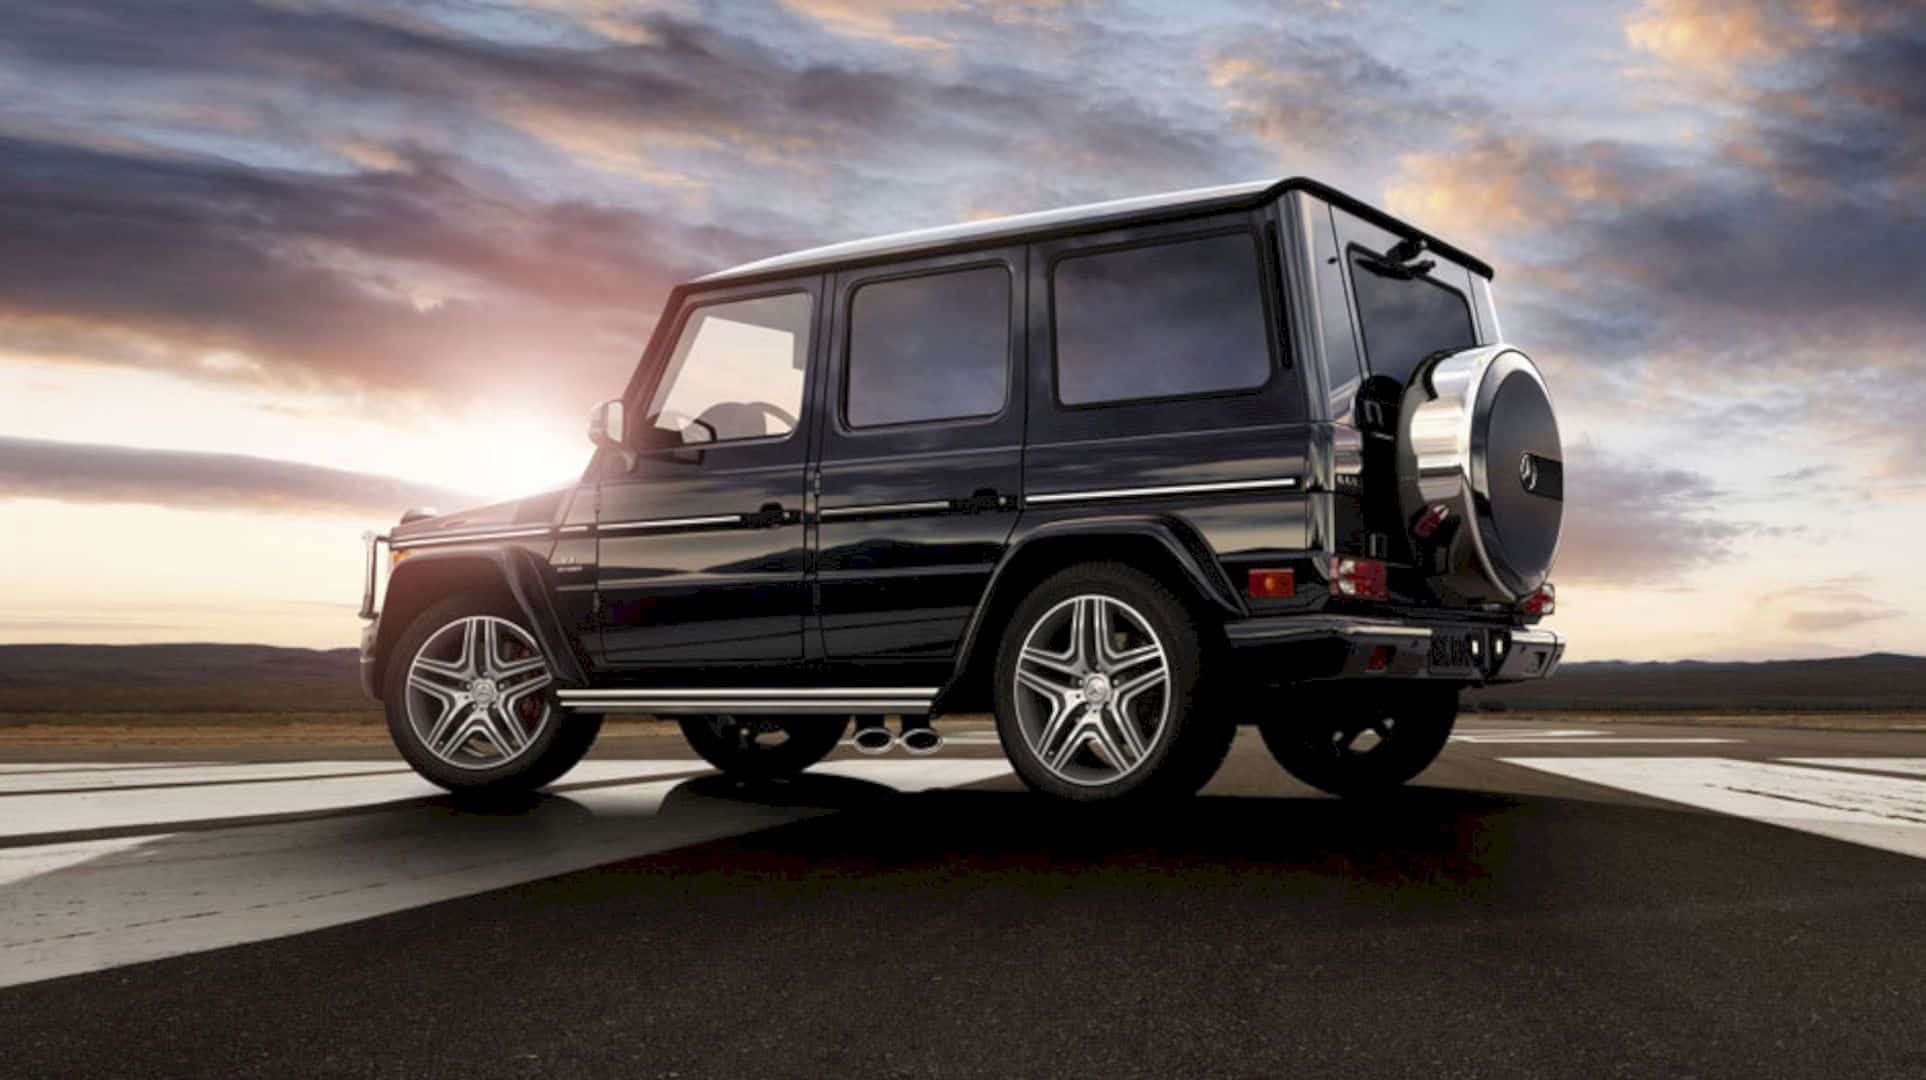 The New Mercedes-Benz G-Class: An Icon Reinvents Itself